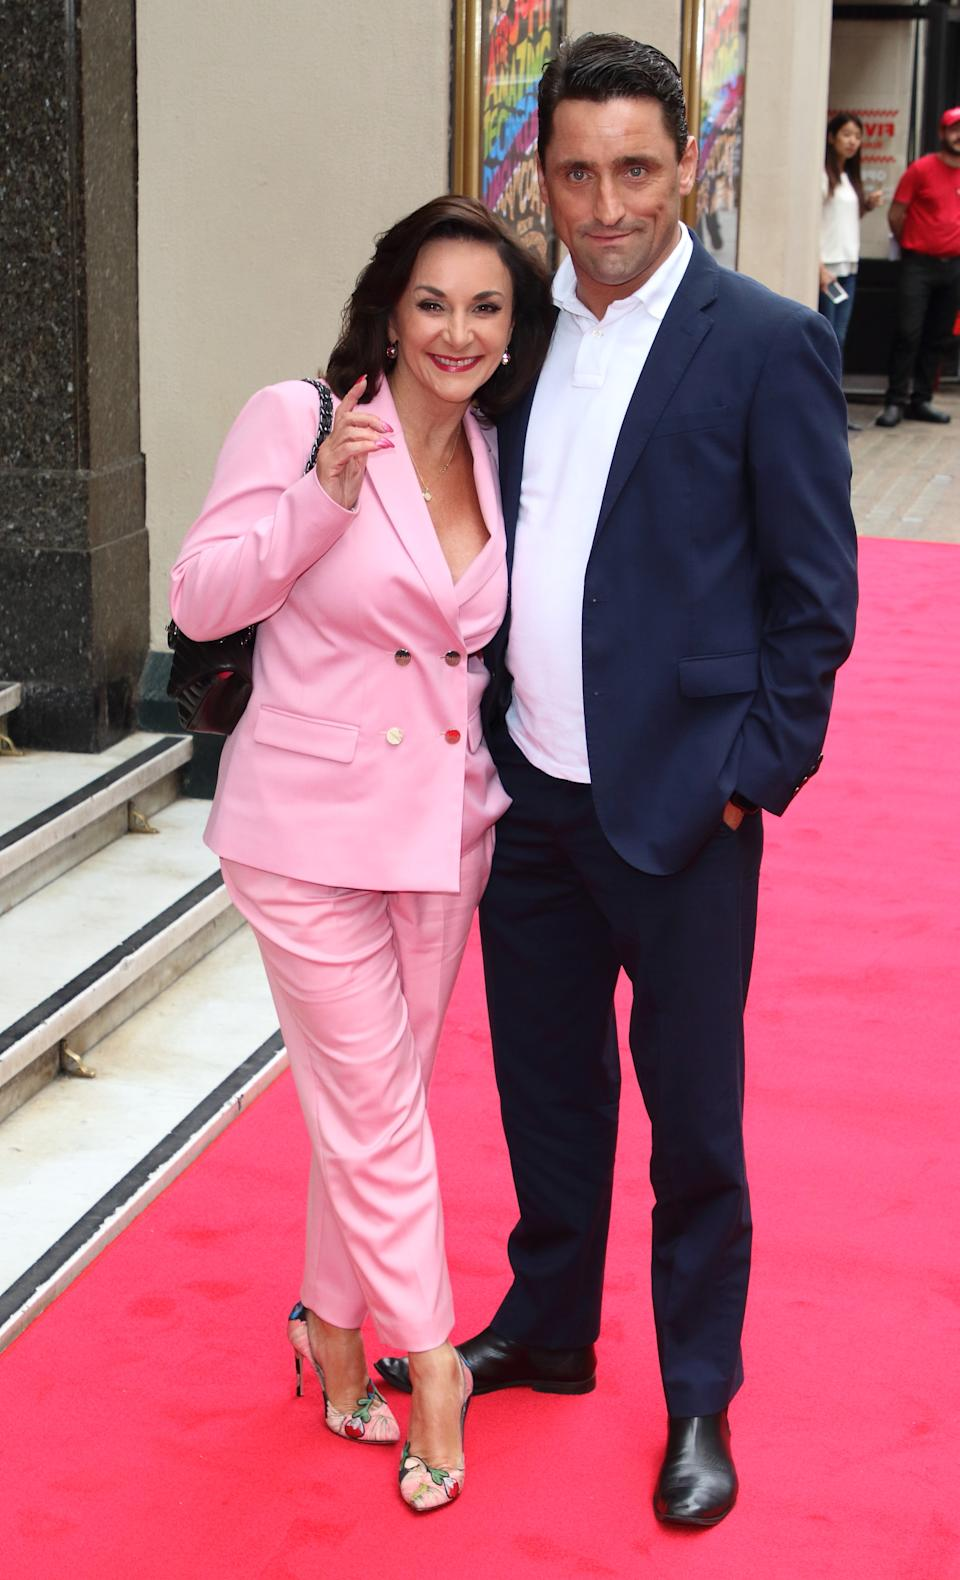 LONDON, UNITED KINGDOM - 2019/07/11: Shirley Ballas and Daniel Taylor attend the Joseph and the Amazing Technicolor Dreamcoat Press Night at the London Palladium. (Photo by Keith Mayhew/SOPA Images/LightRocket via Getty Images)